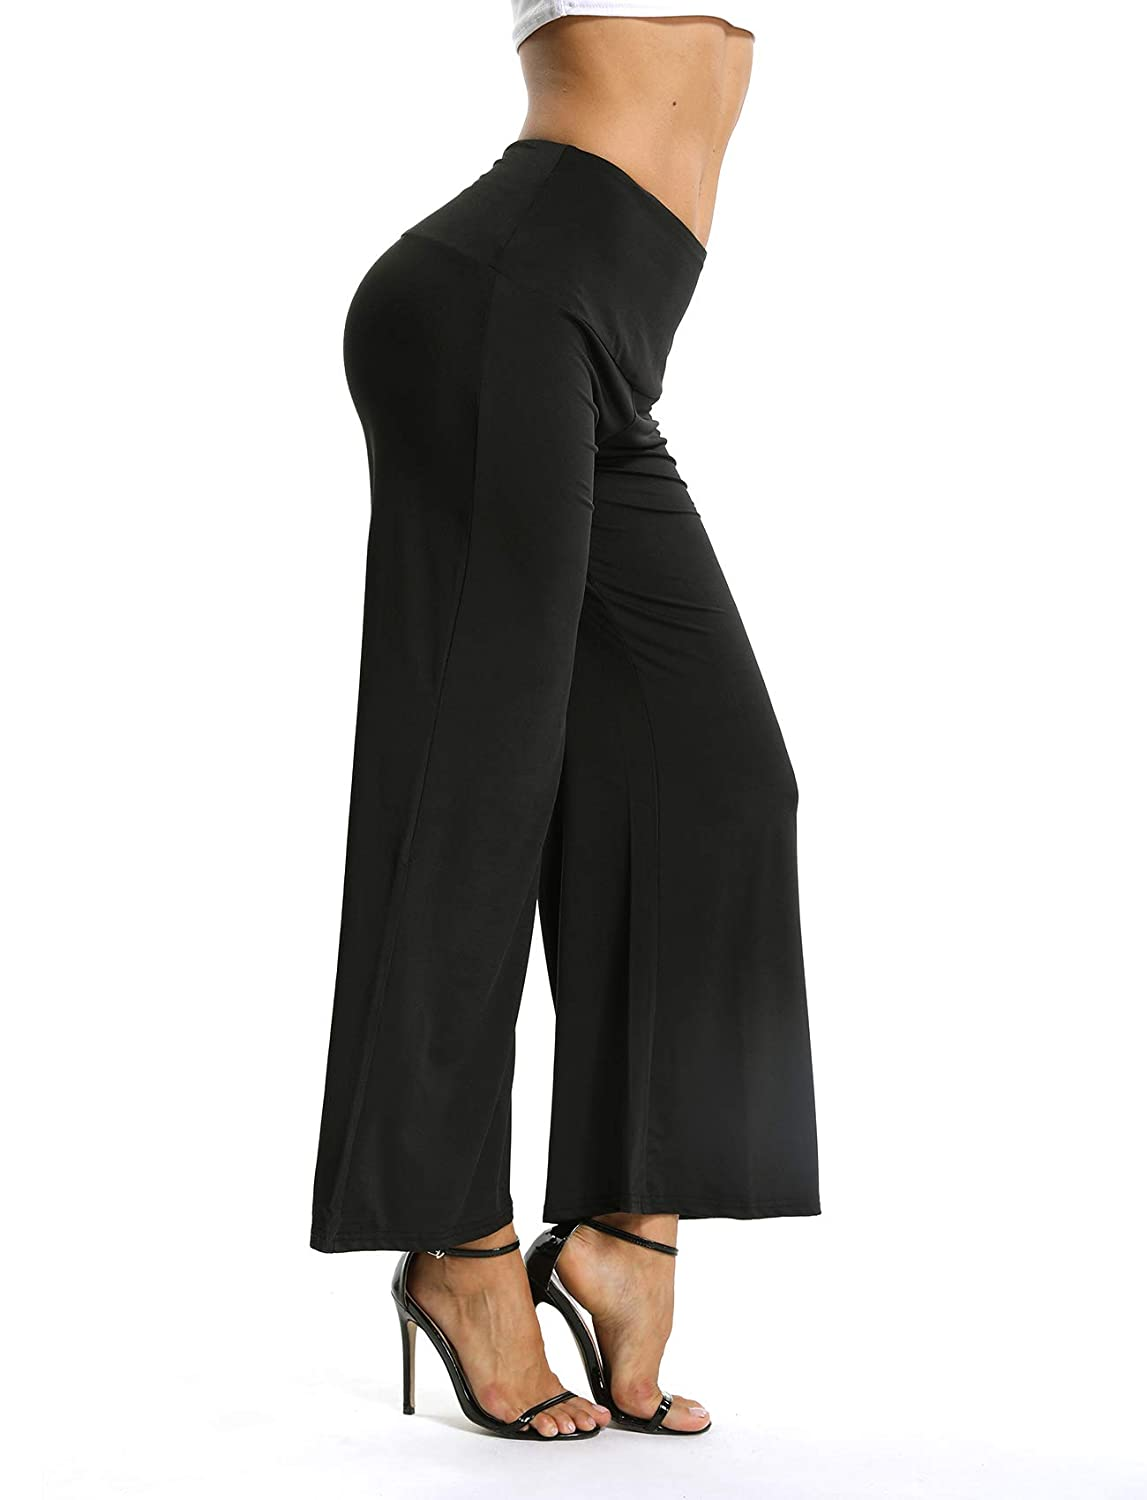 SEASUM Women's Casual Long Palazzo Lounge Pant Loose High Waisted Soft Trousers